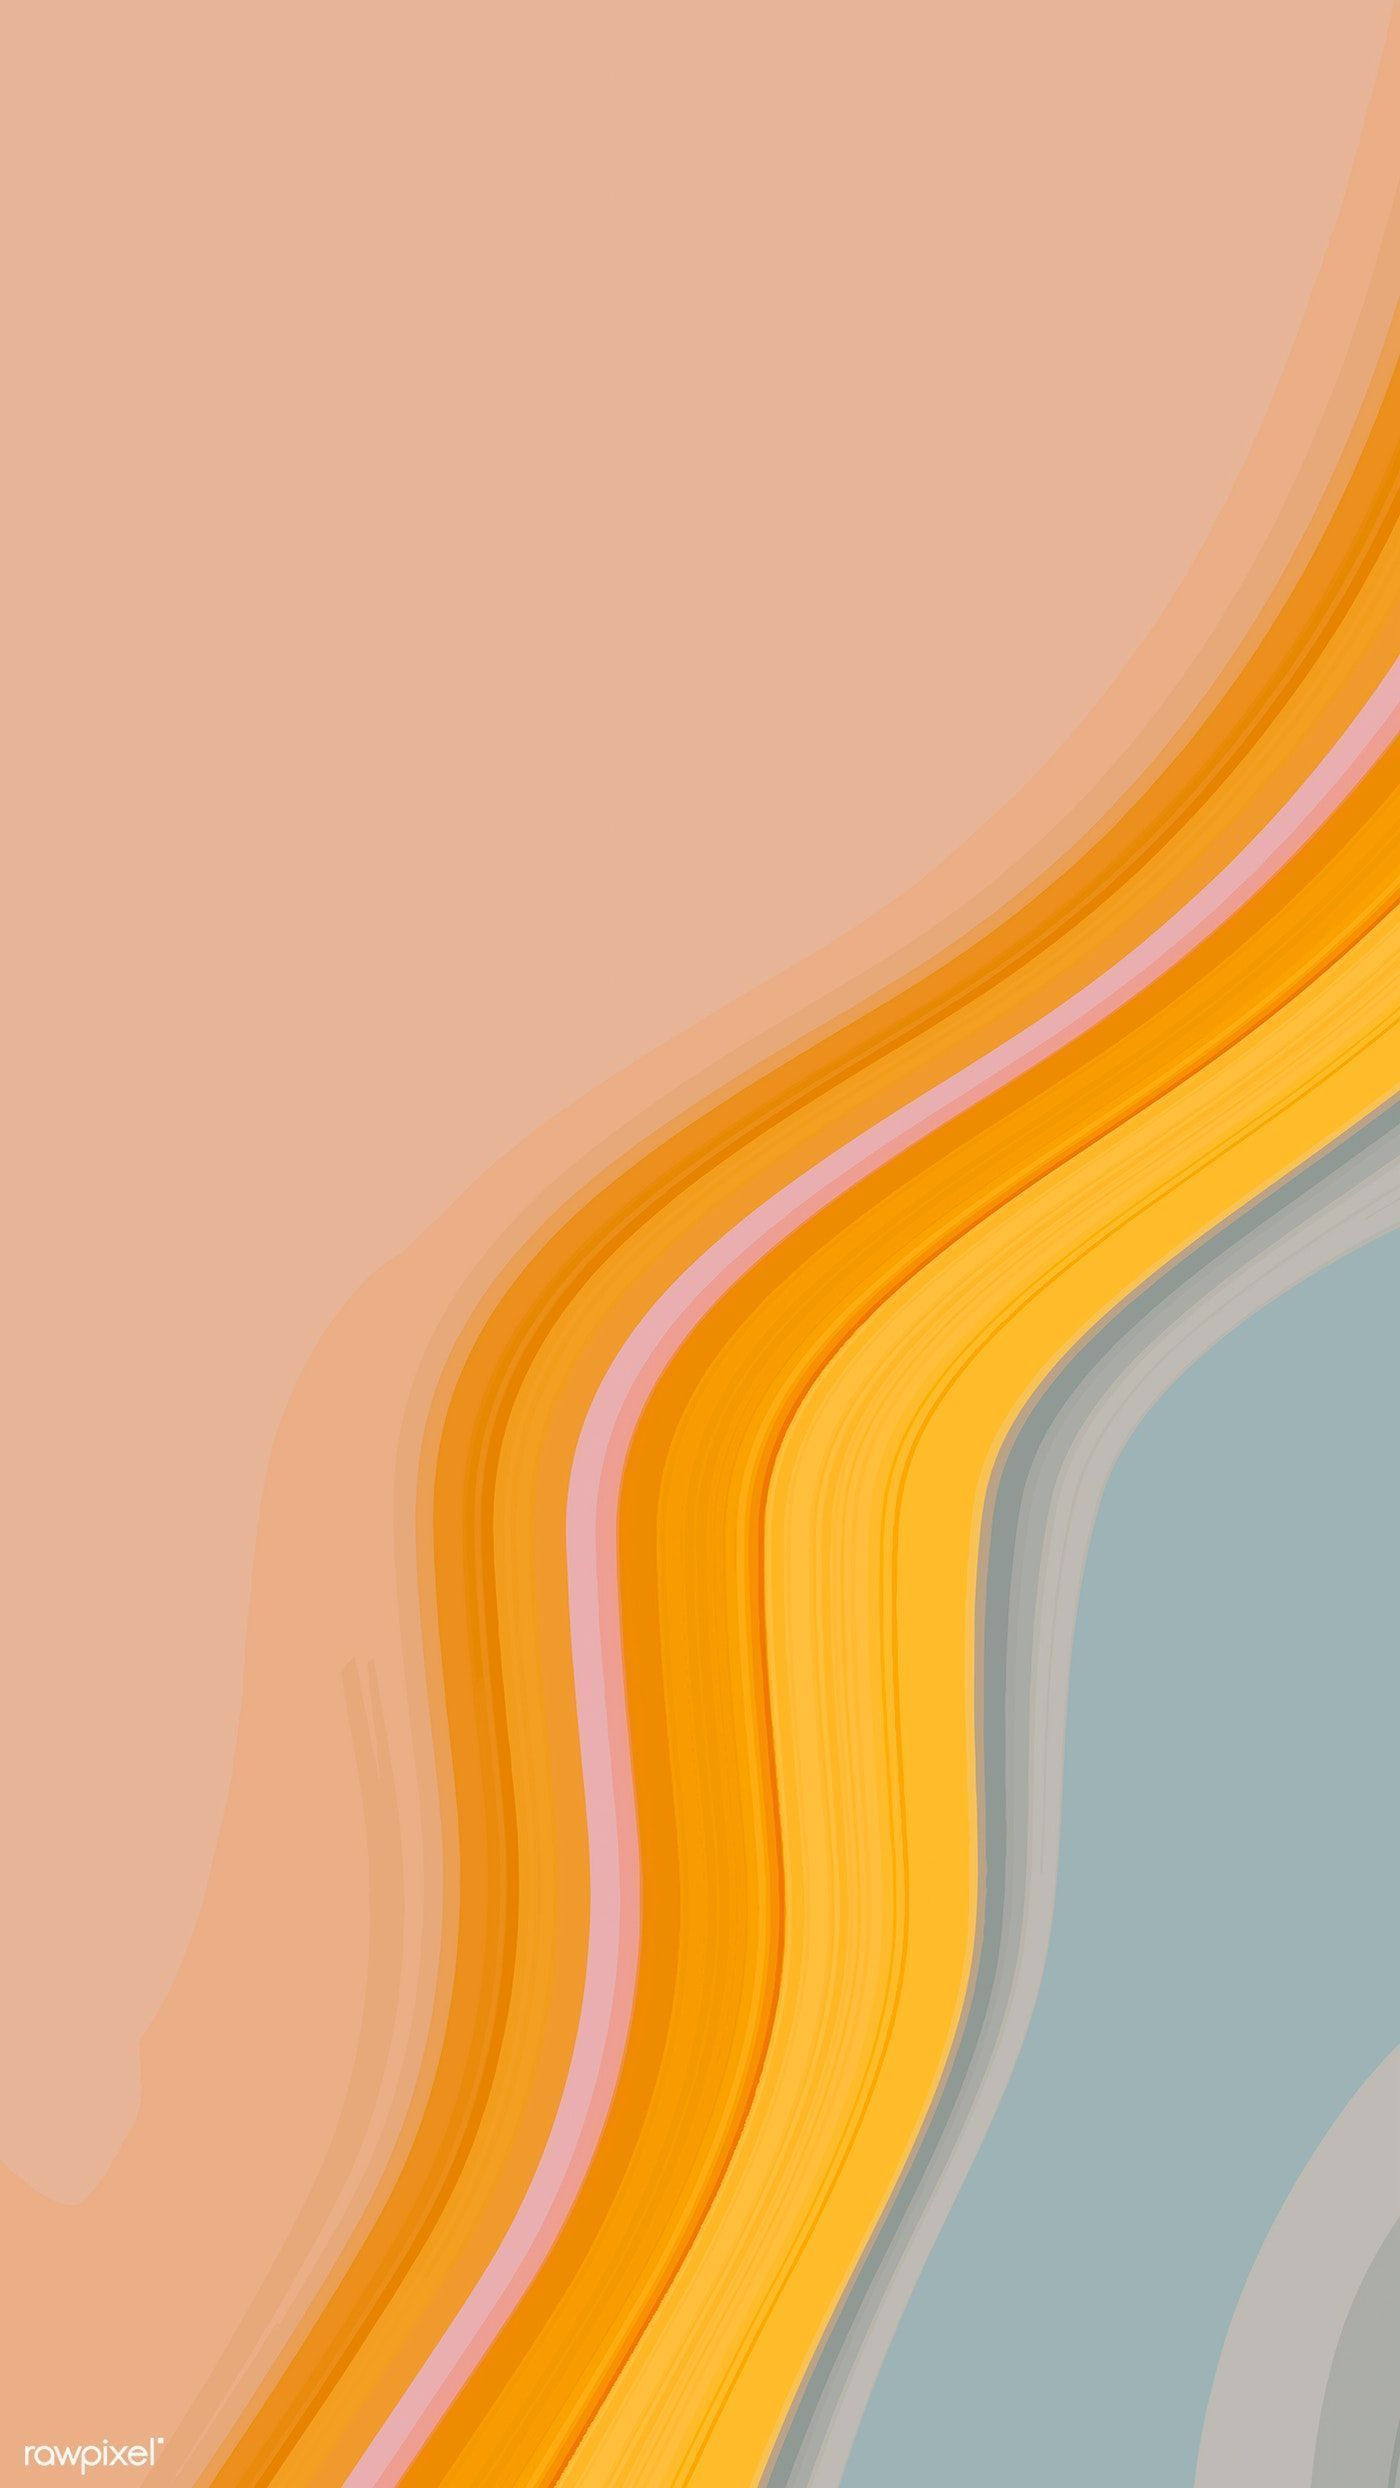 Orange and blue fluid patterned mobile phone wallpaper vector 4k iphone and mobi… - Modern